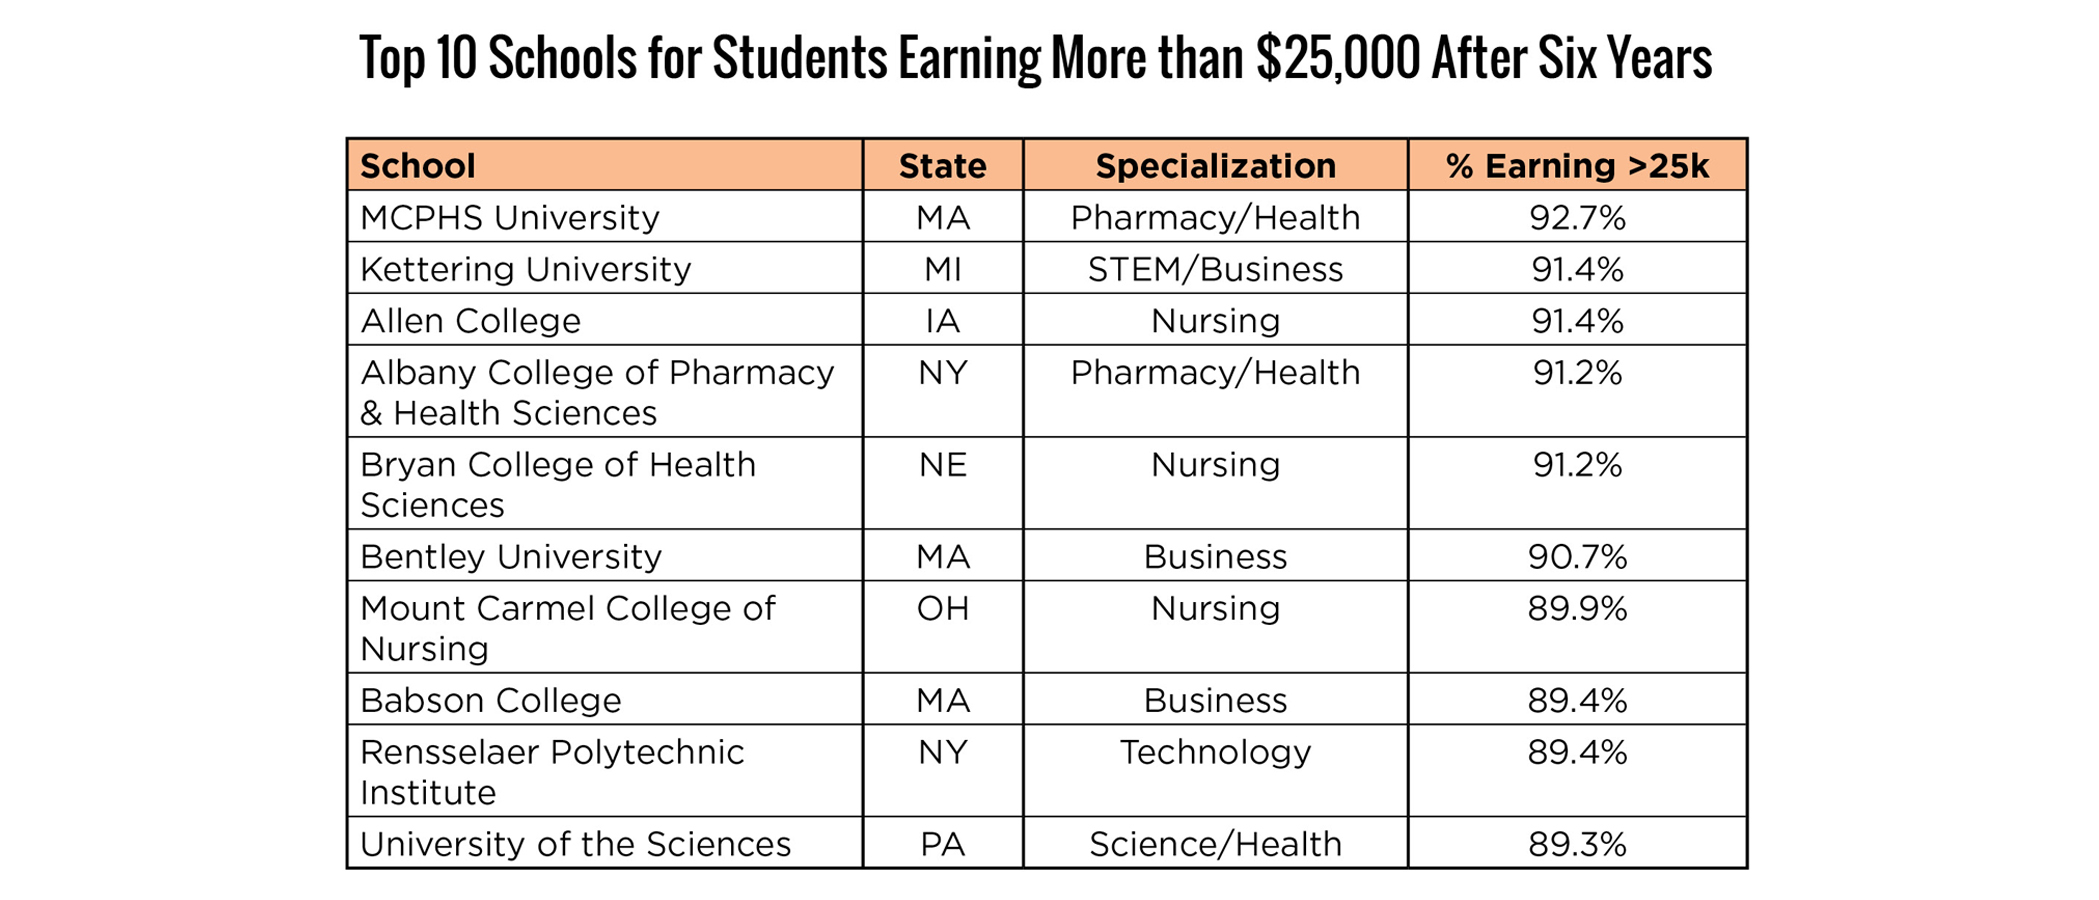 Top 10 Schools for Students Earning More than $25,000 After Six Years